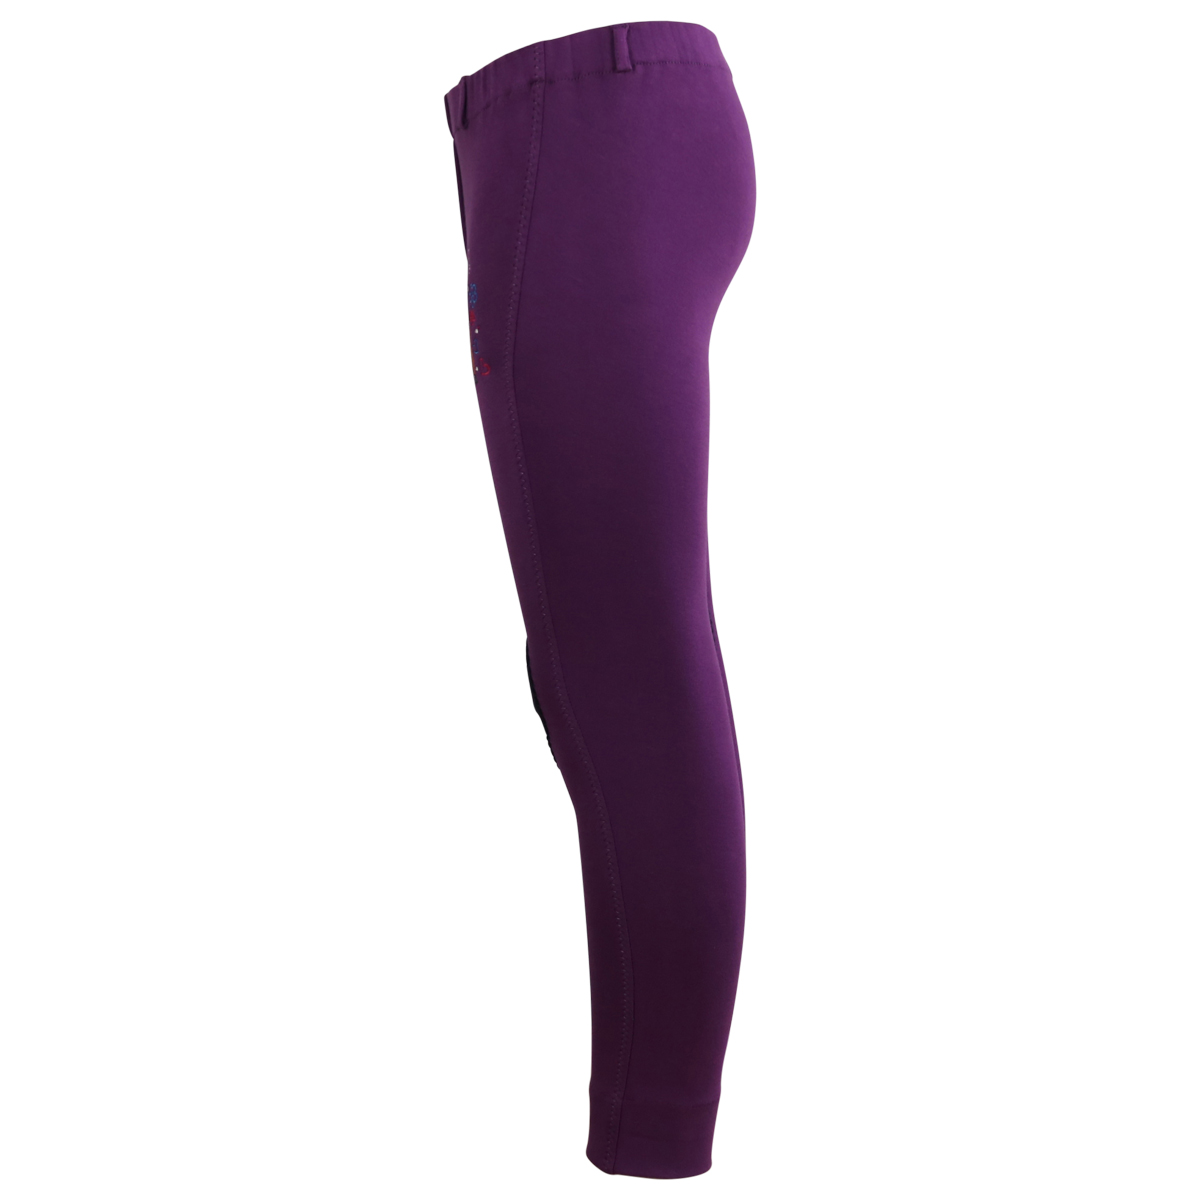 Sneakers Ariat Fuse Ss20, EU 38 - US 7,5in green